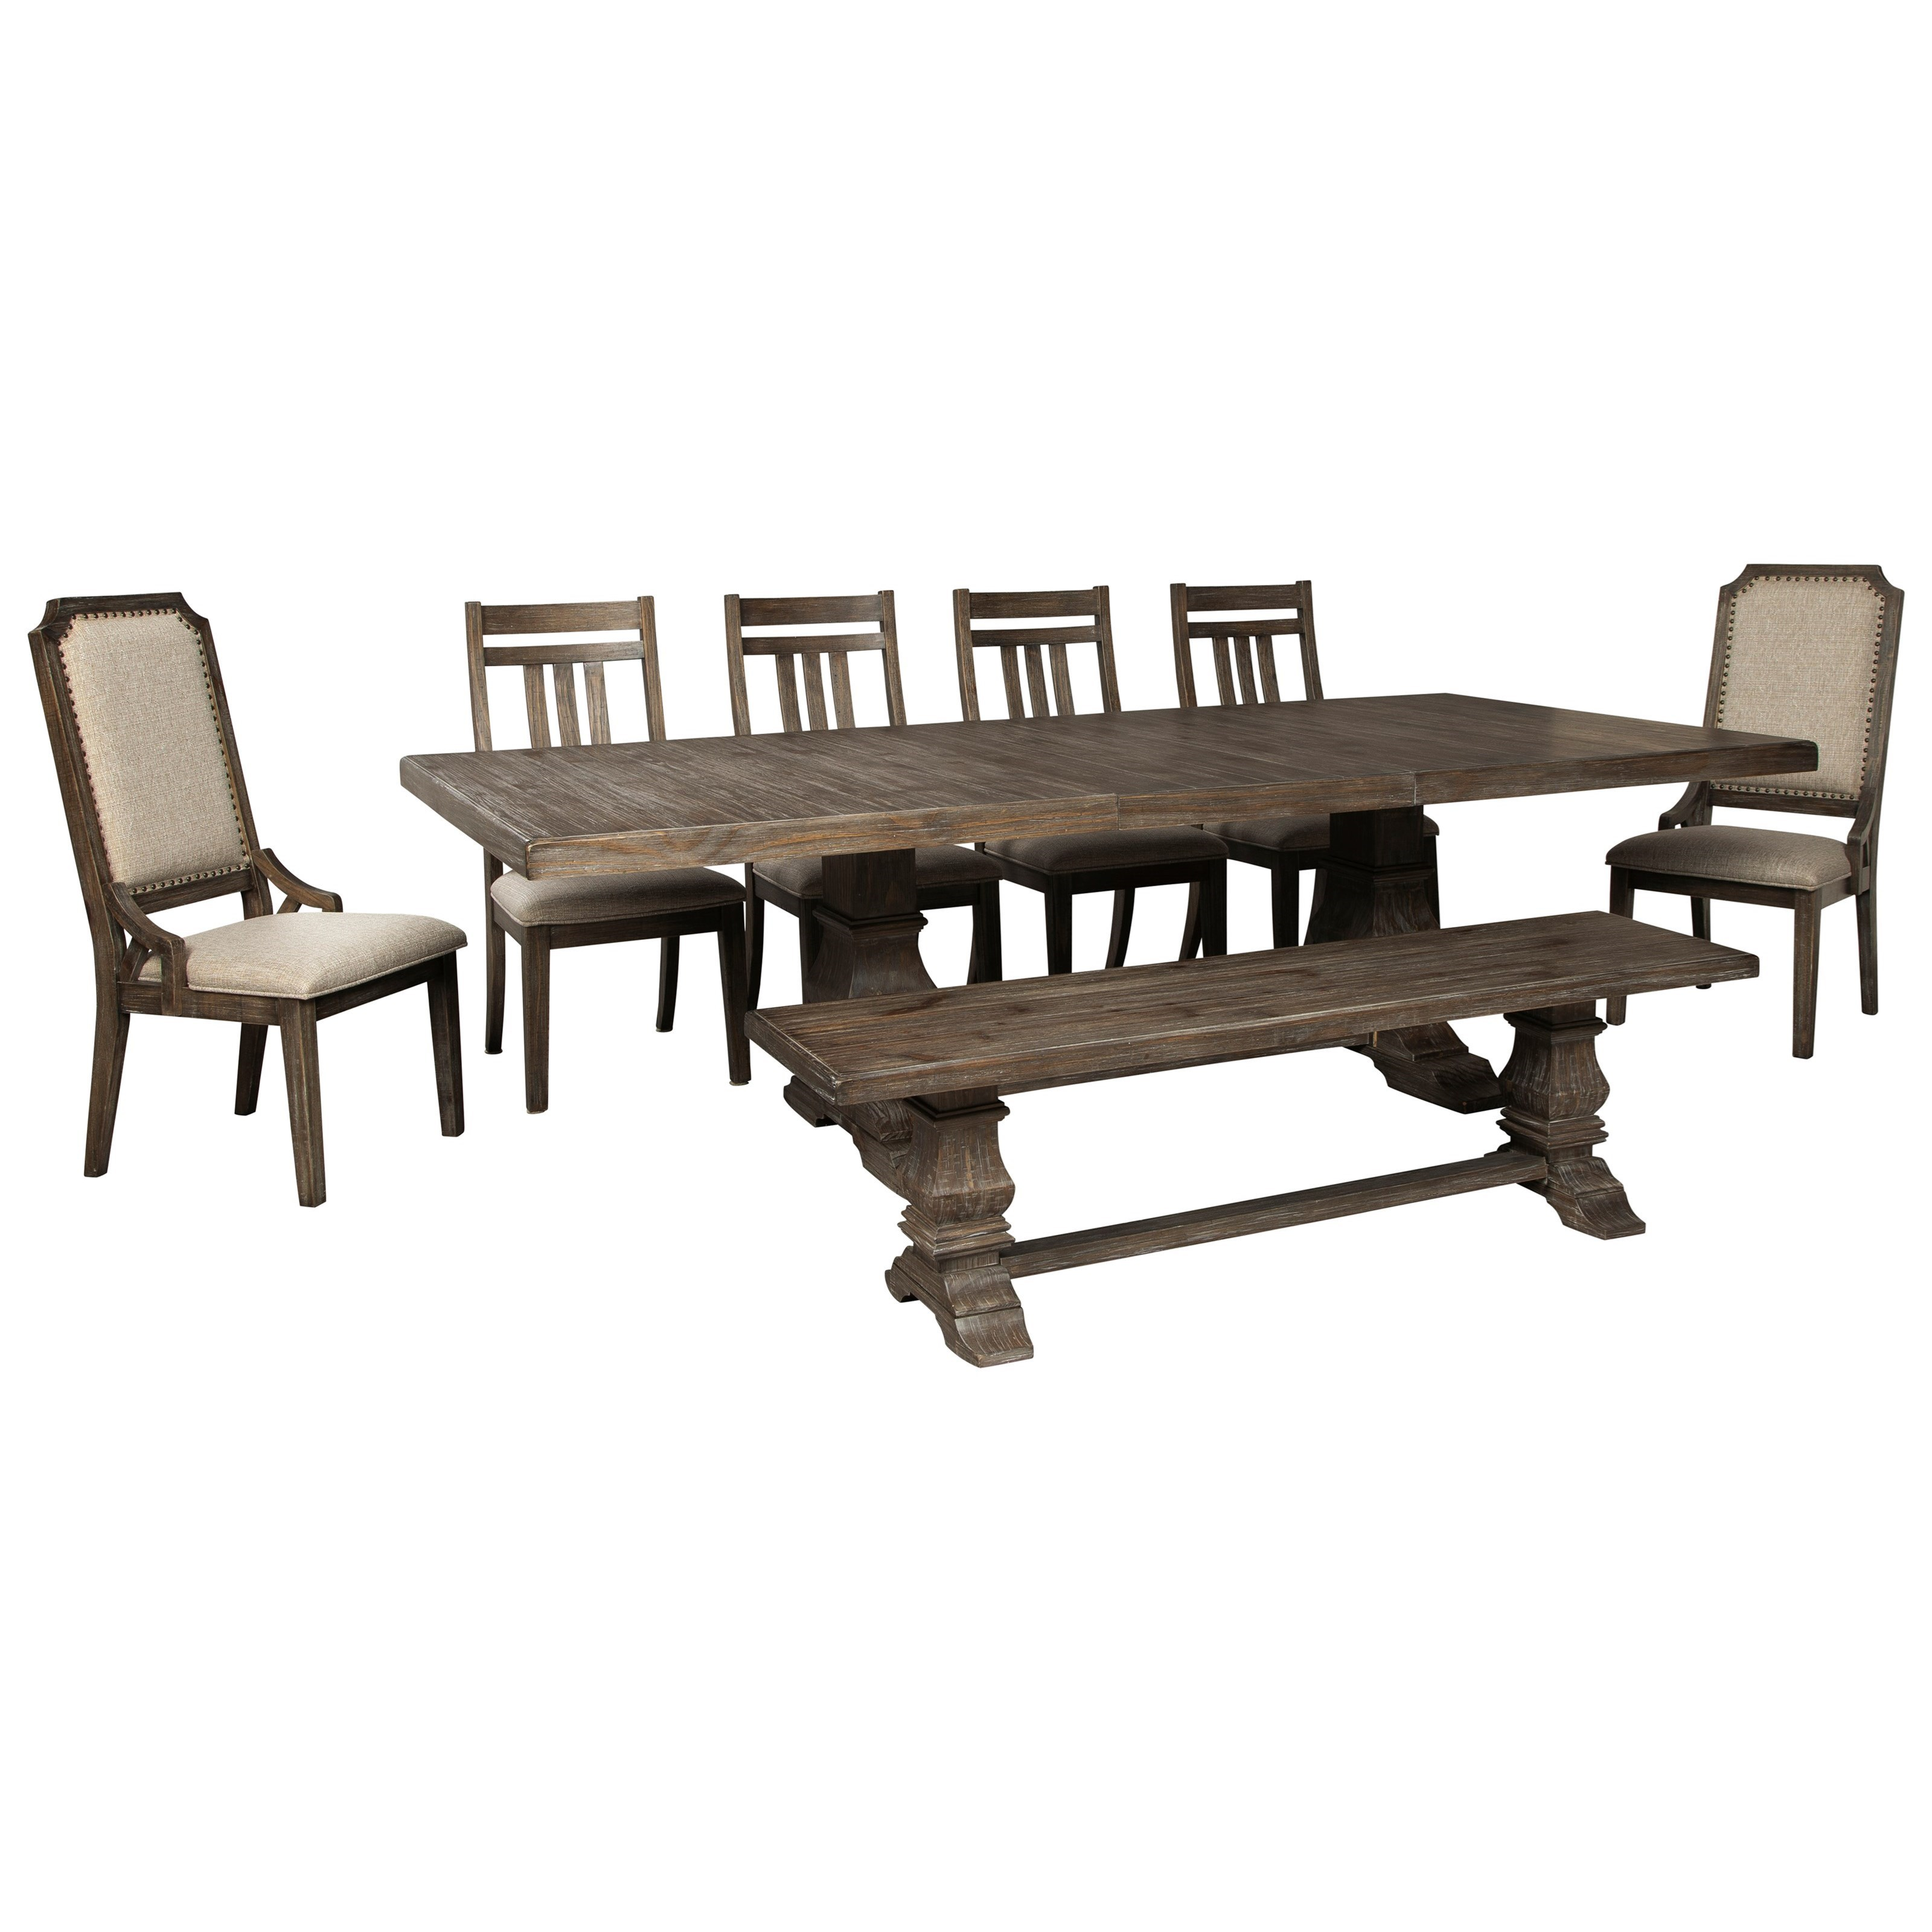 Wyndahl 8-Piece Dining Table Set with Bench by Ashley (Signature Design) at Johnny Janosik